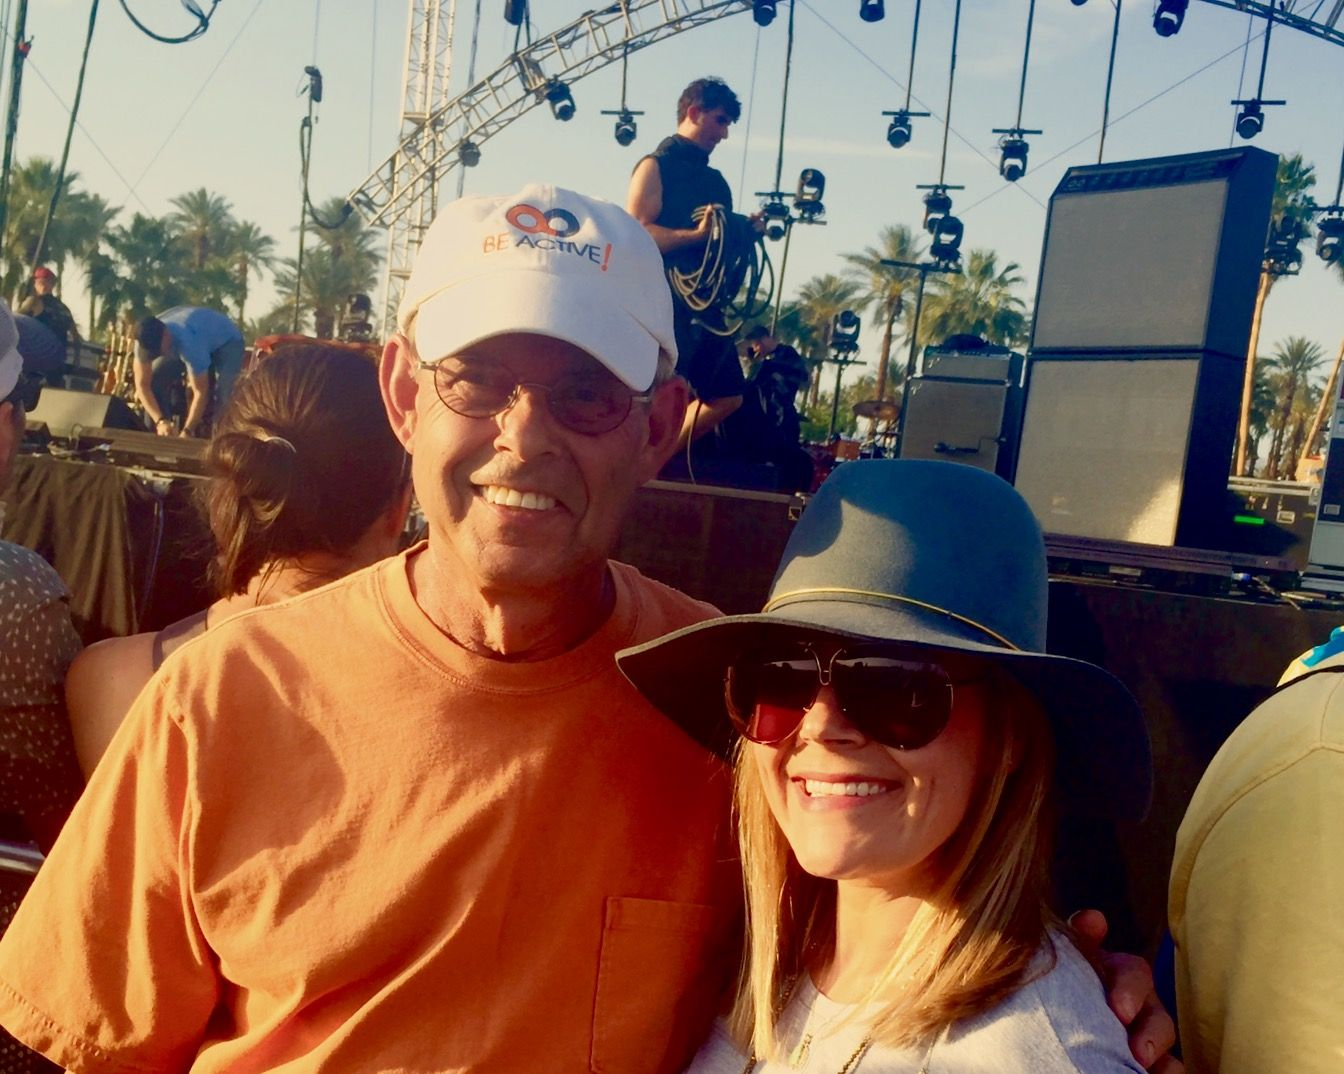 Concert season is here! Dr. Roger Greenberg and his daughter kicked things off this weekend at the Coachella Valley Music and Arts Fest in California ‪#‎BeActive‬